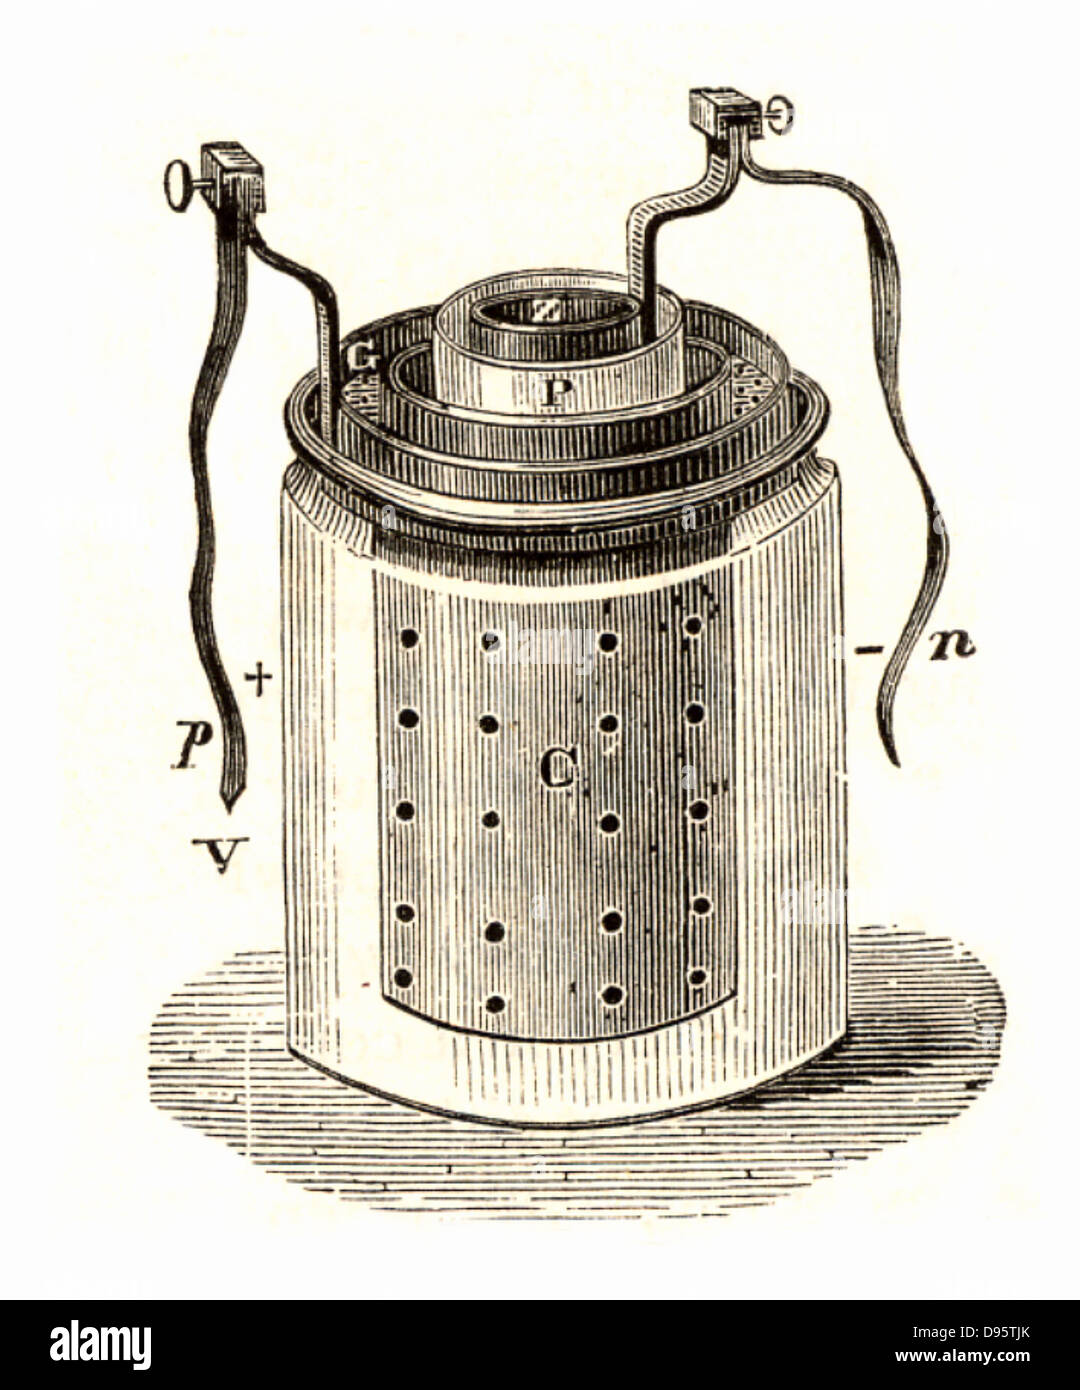 Daniell cell (1836) a wet storage battery invented by the English chemist John Frederic Daniell (1790-1845). Engraving - Stock Image